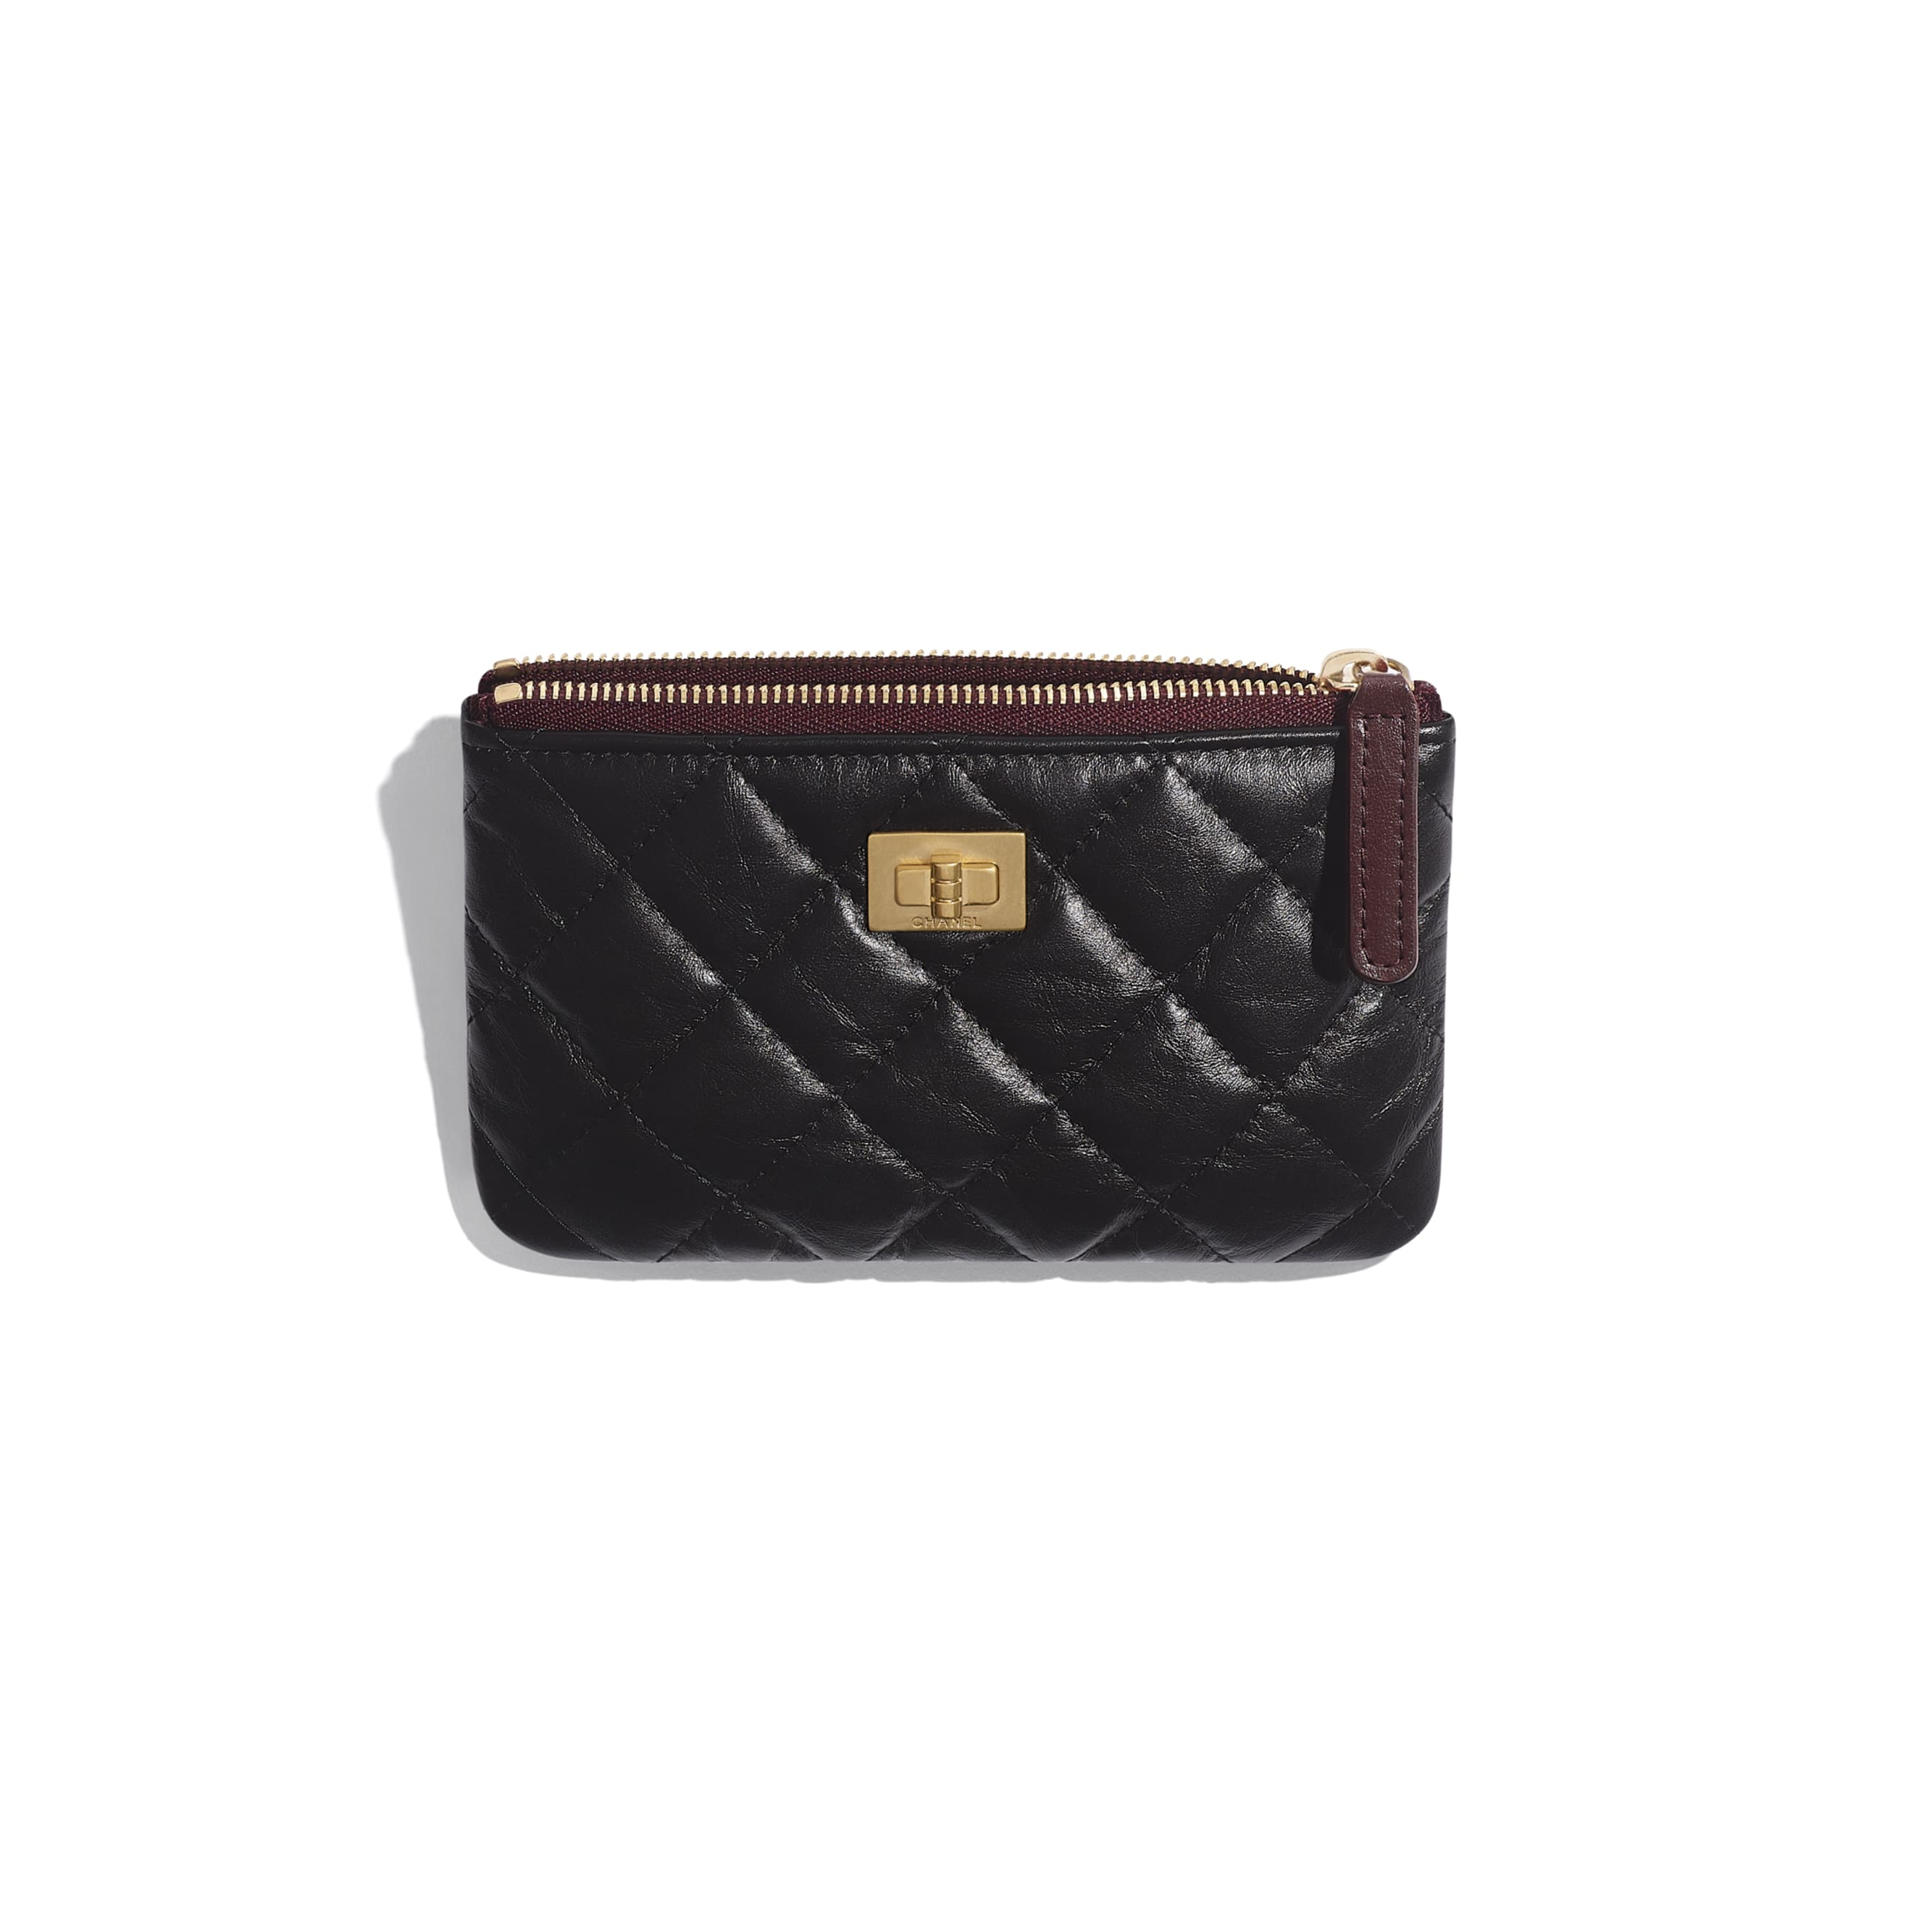 2.55 Mini Pouch - Black - Aged Calfskin & Gold-Tone Metal - CHANEL - Other view - see standard sized version